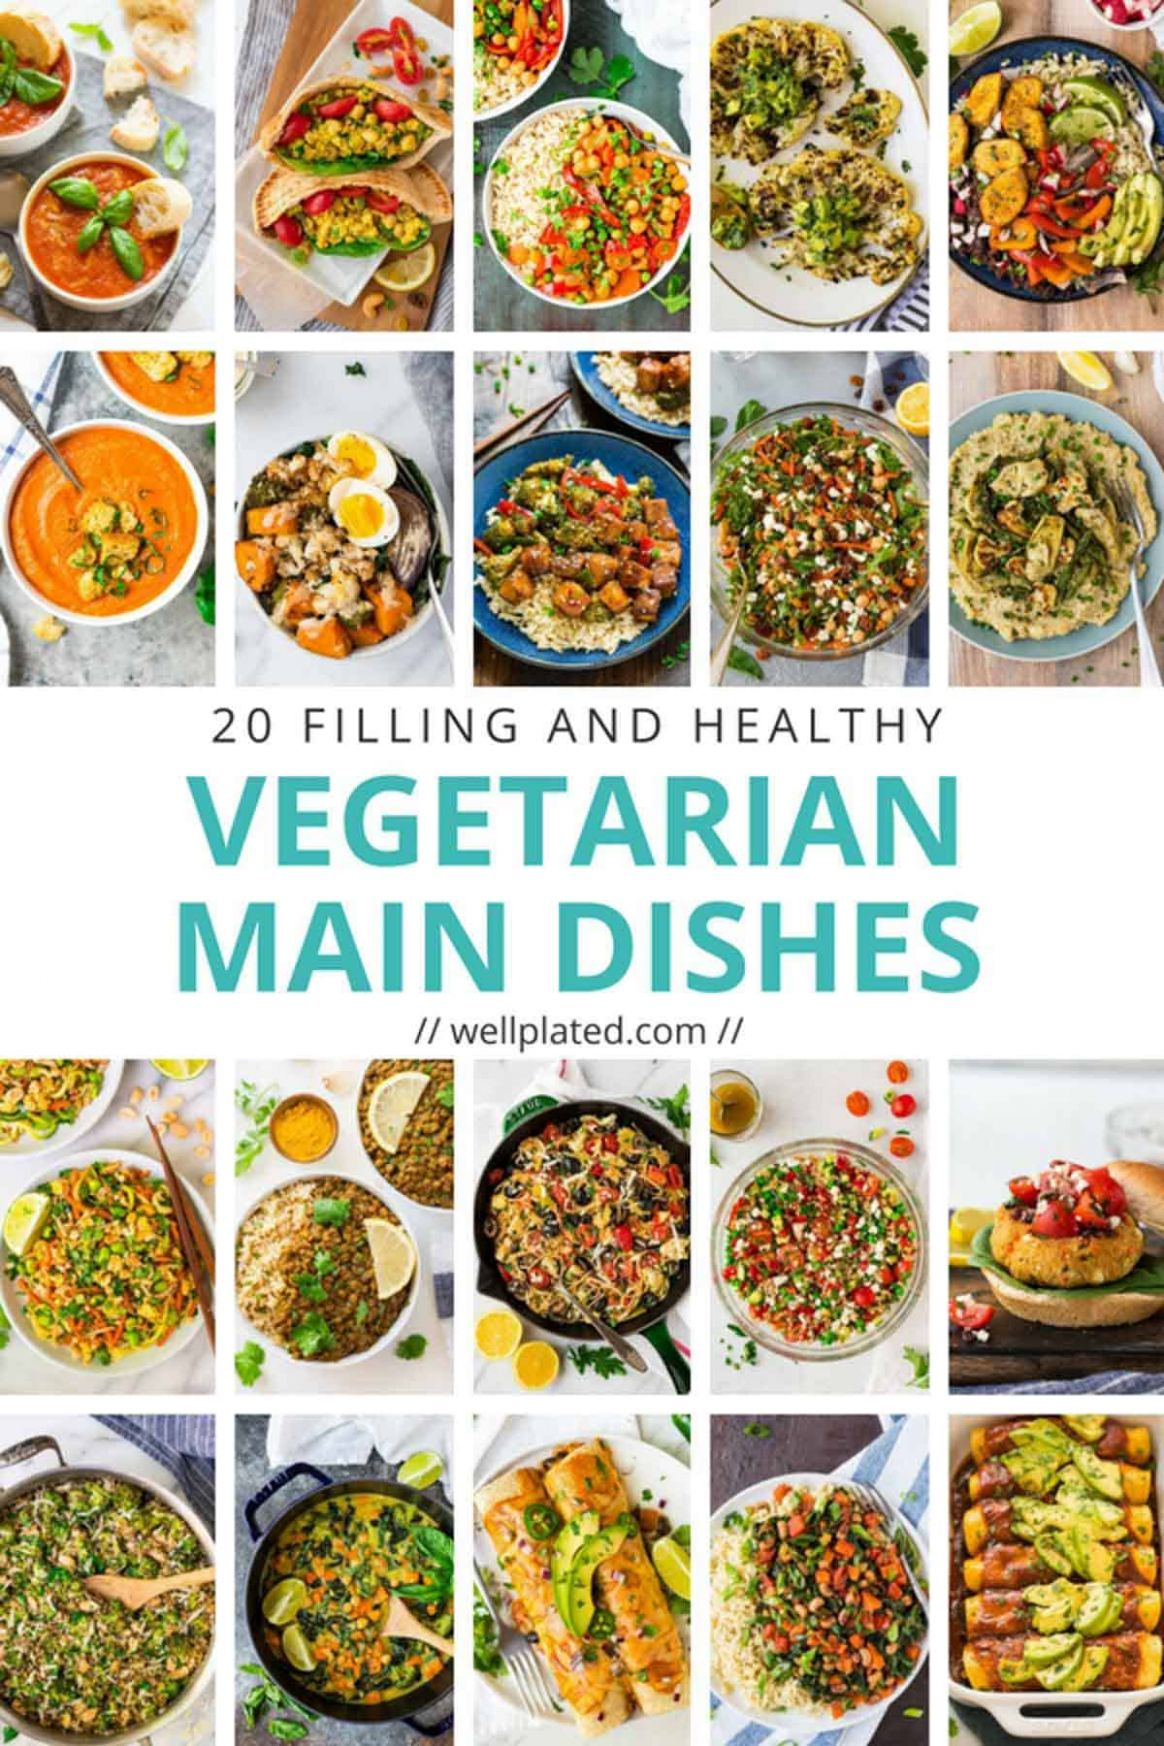 10 Healthy Vegetarian Dinner Recipes - Dinner Recipes Healthy Vegetarian